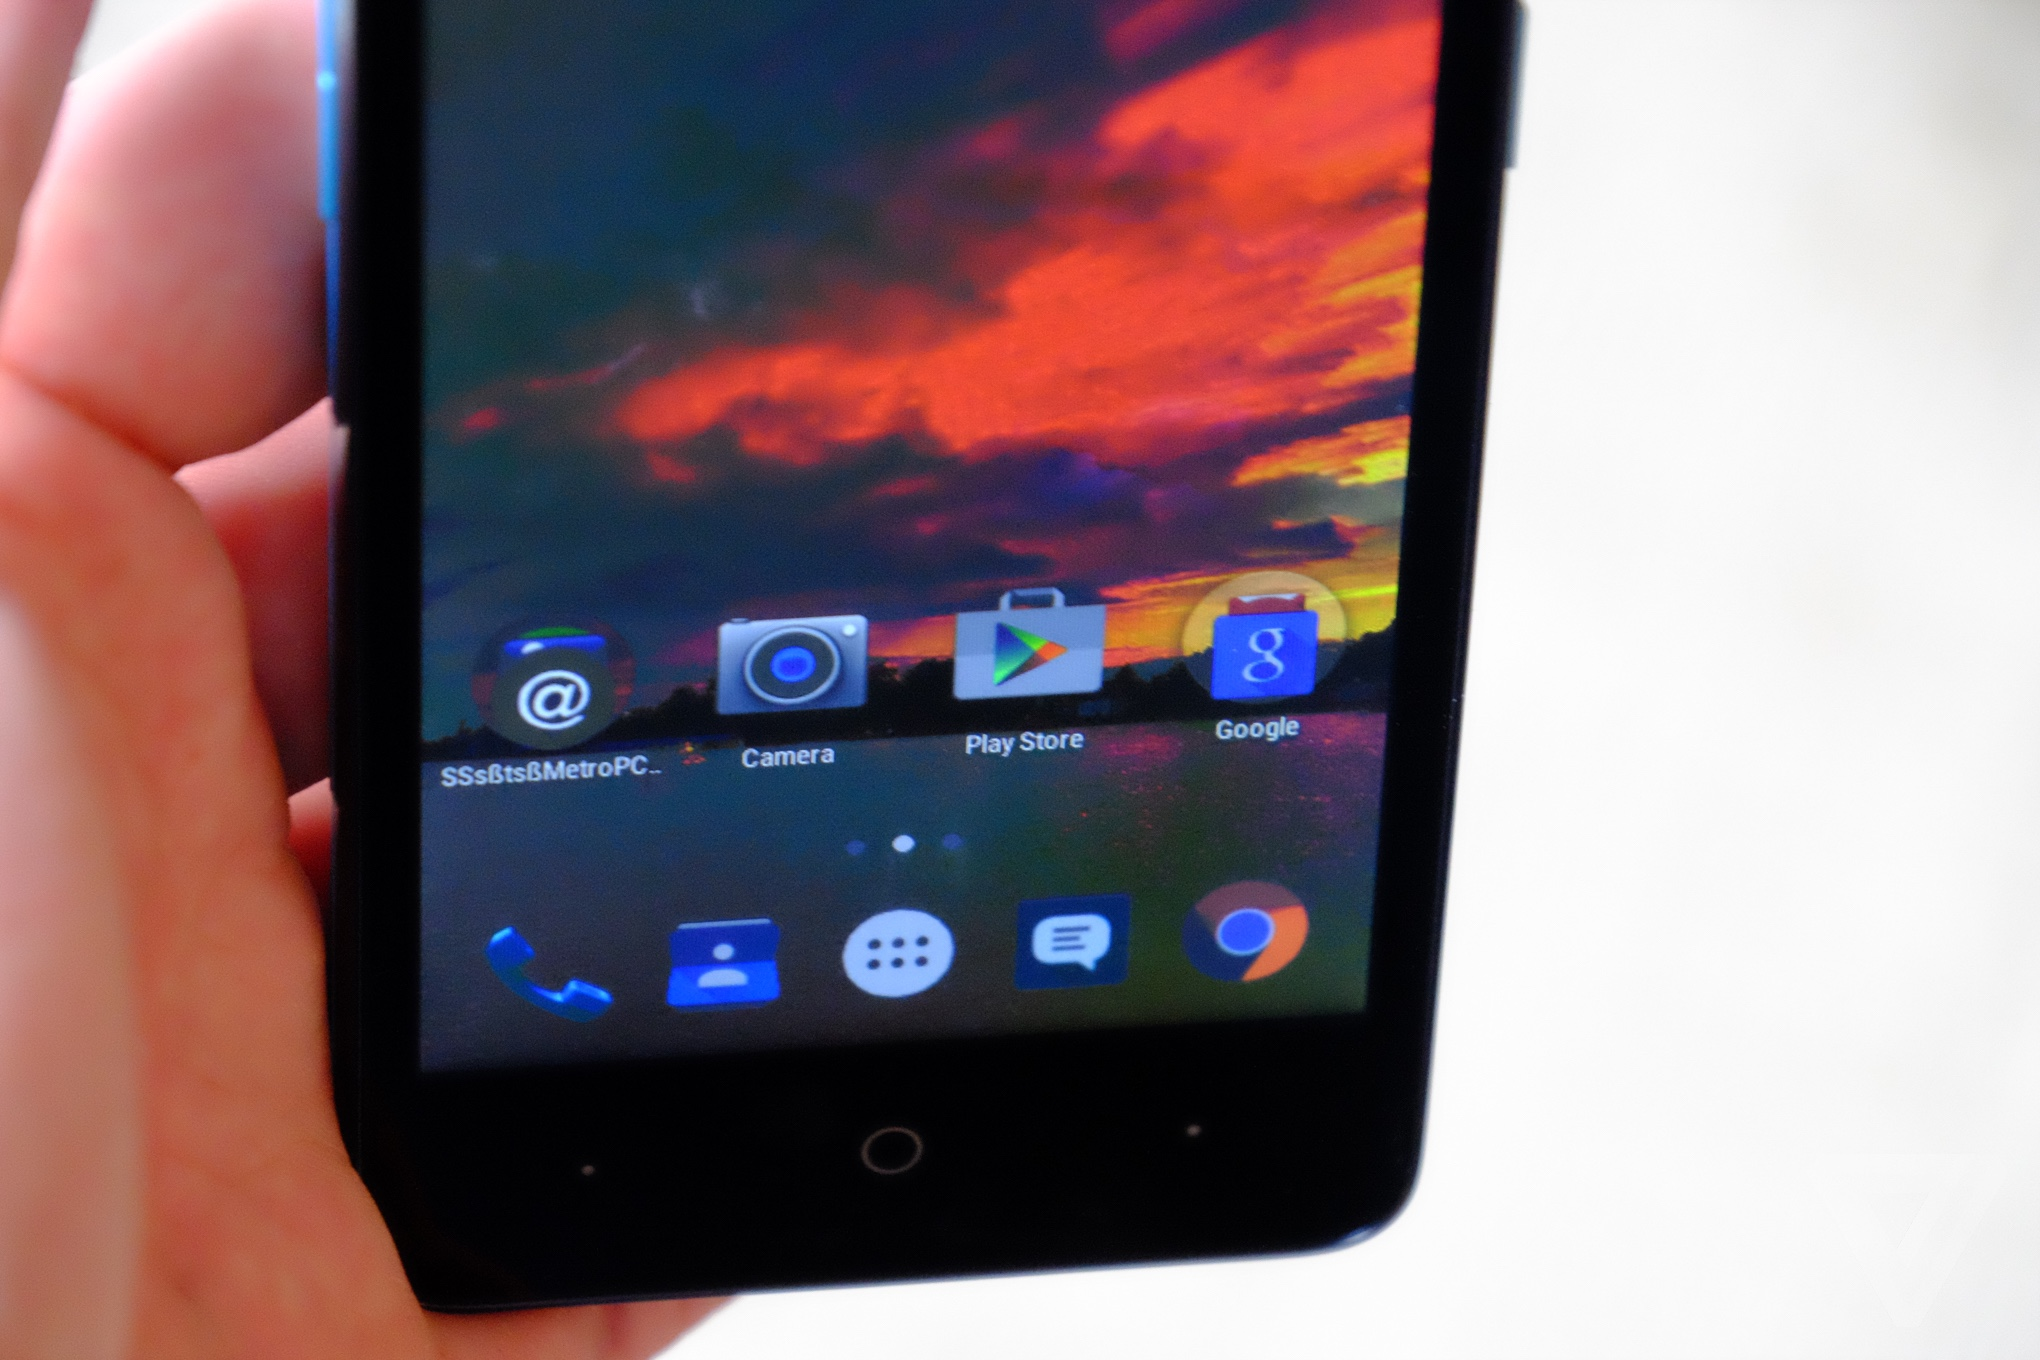 ZTE launches two inexpensive Android phones at CES 2016